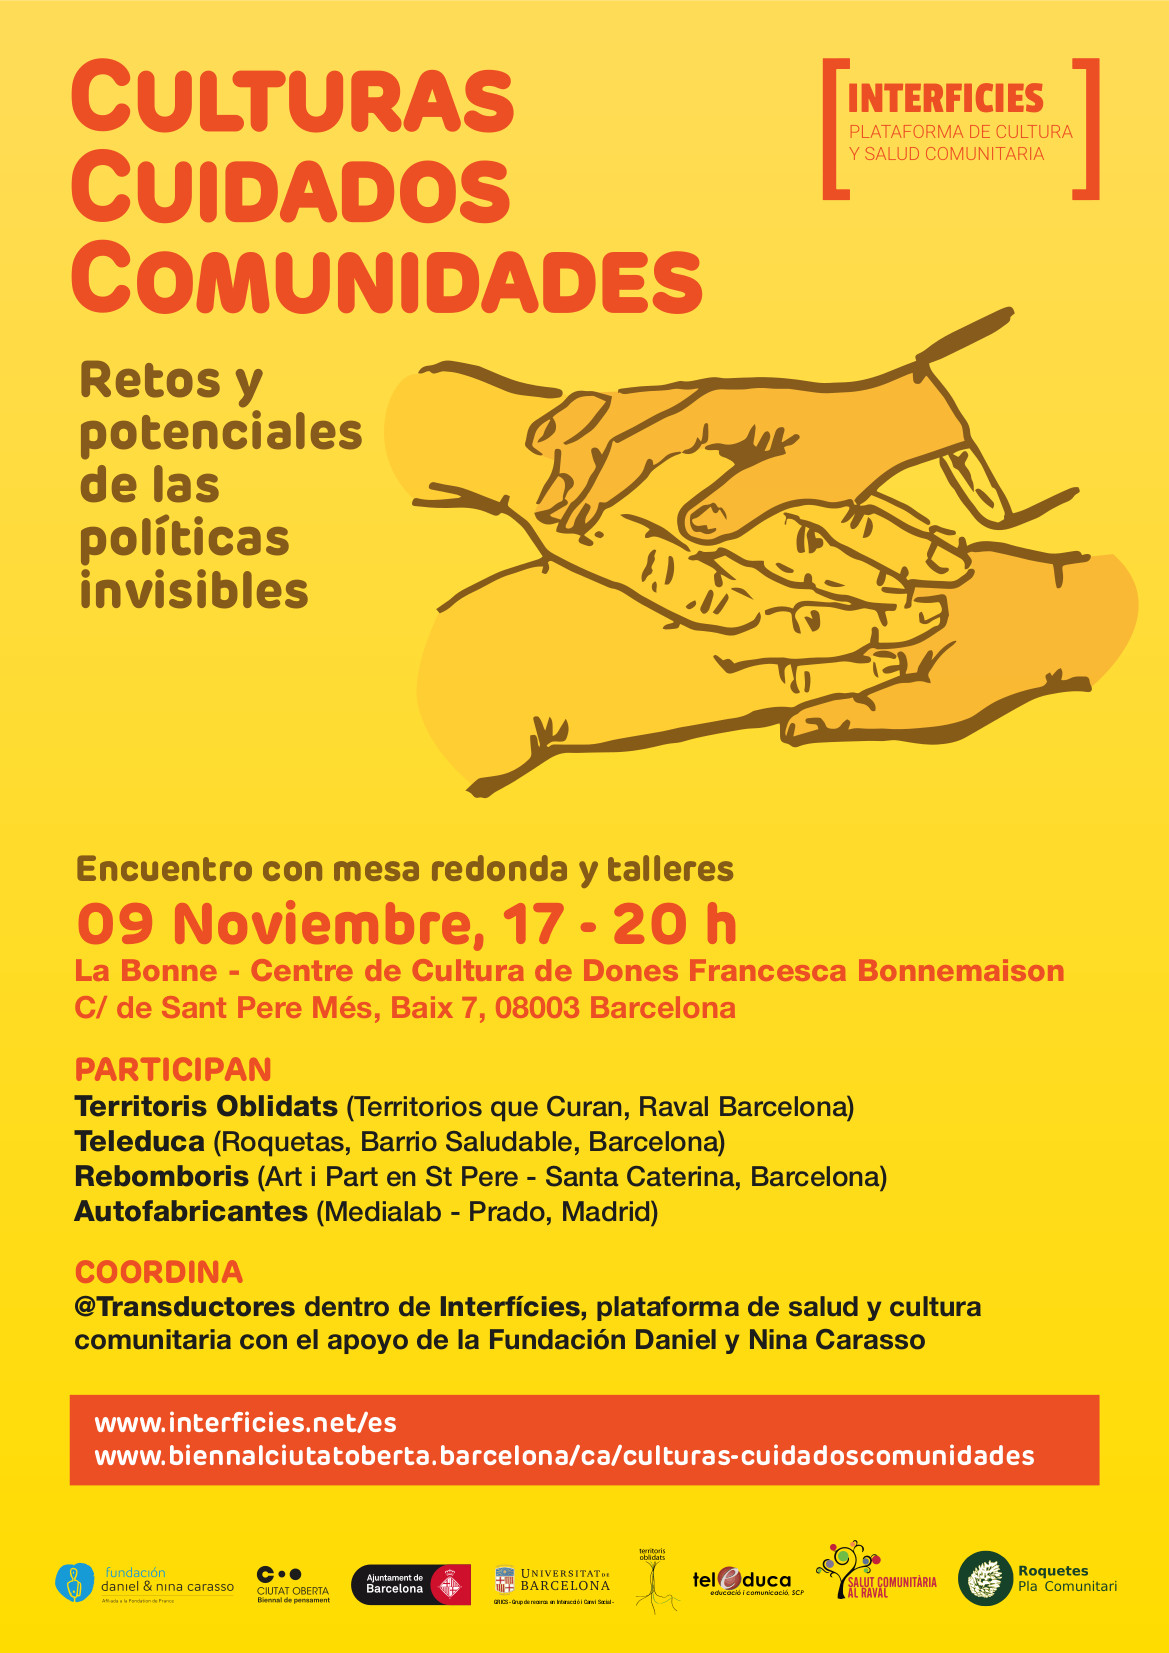 Poster09 NOV_interficies web